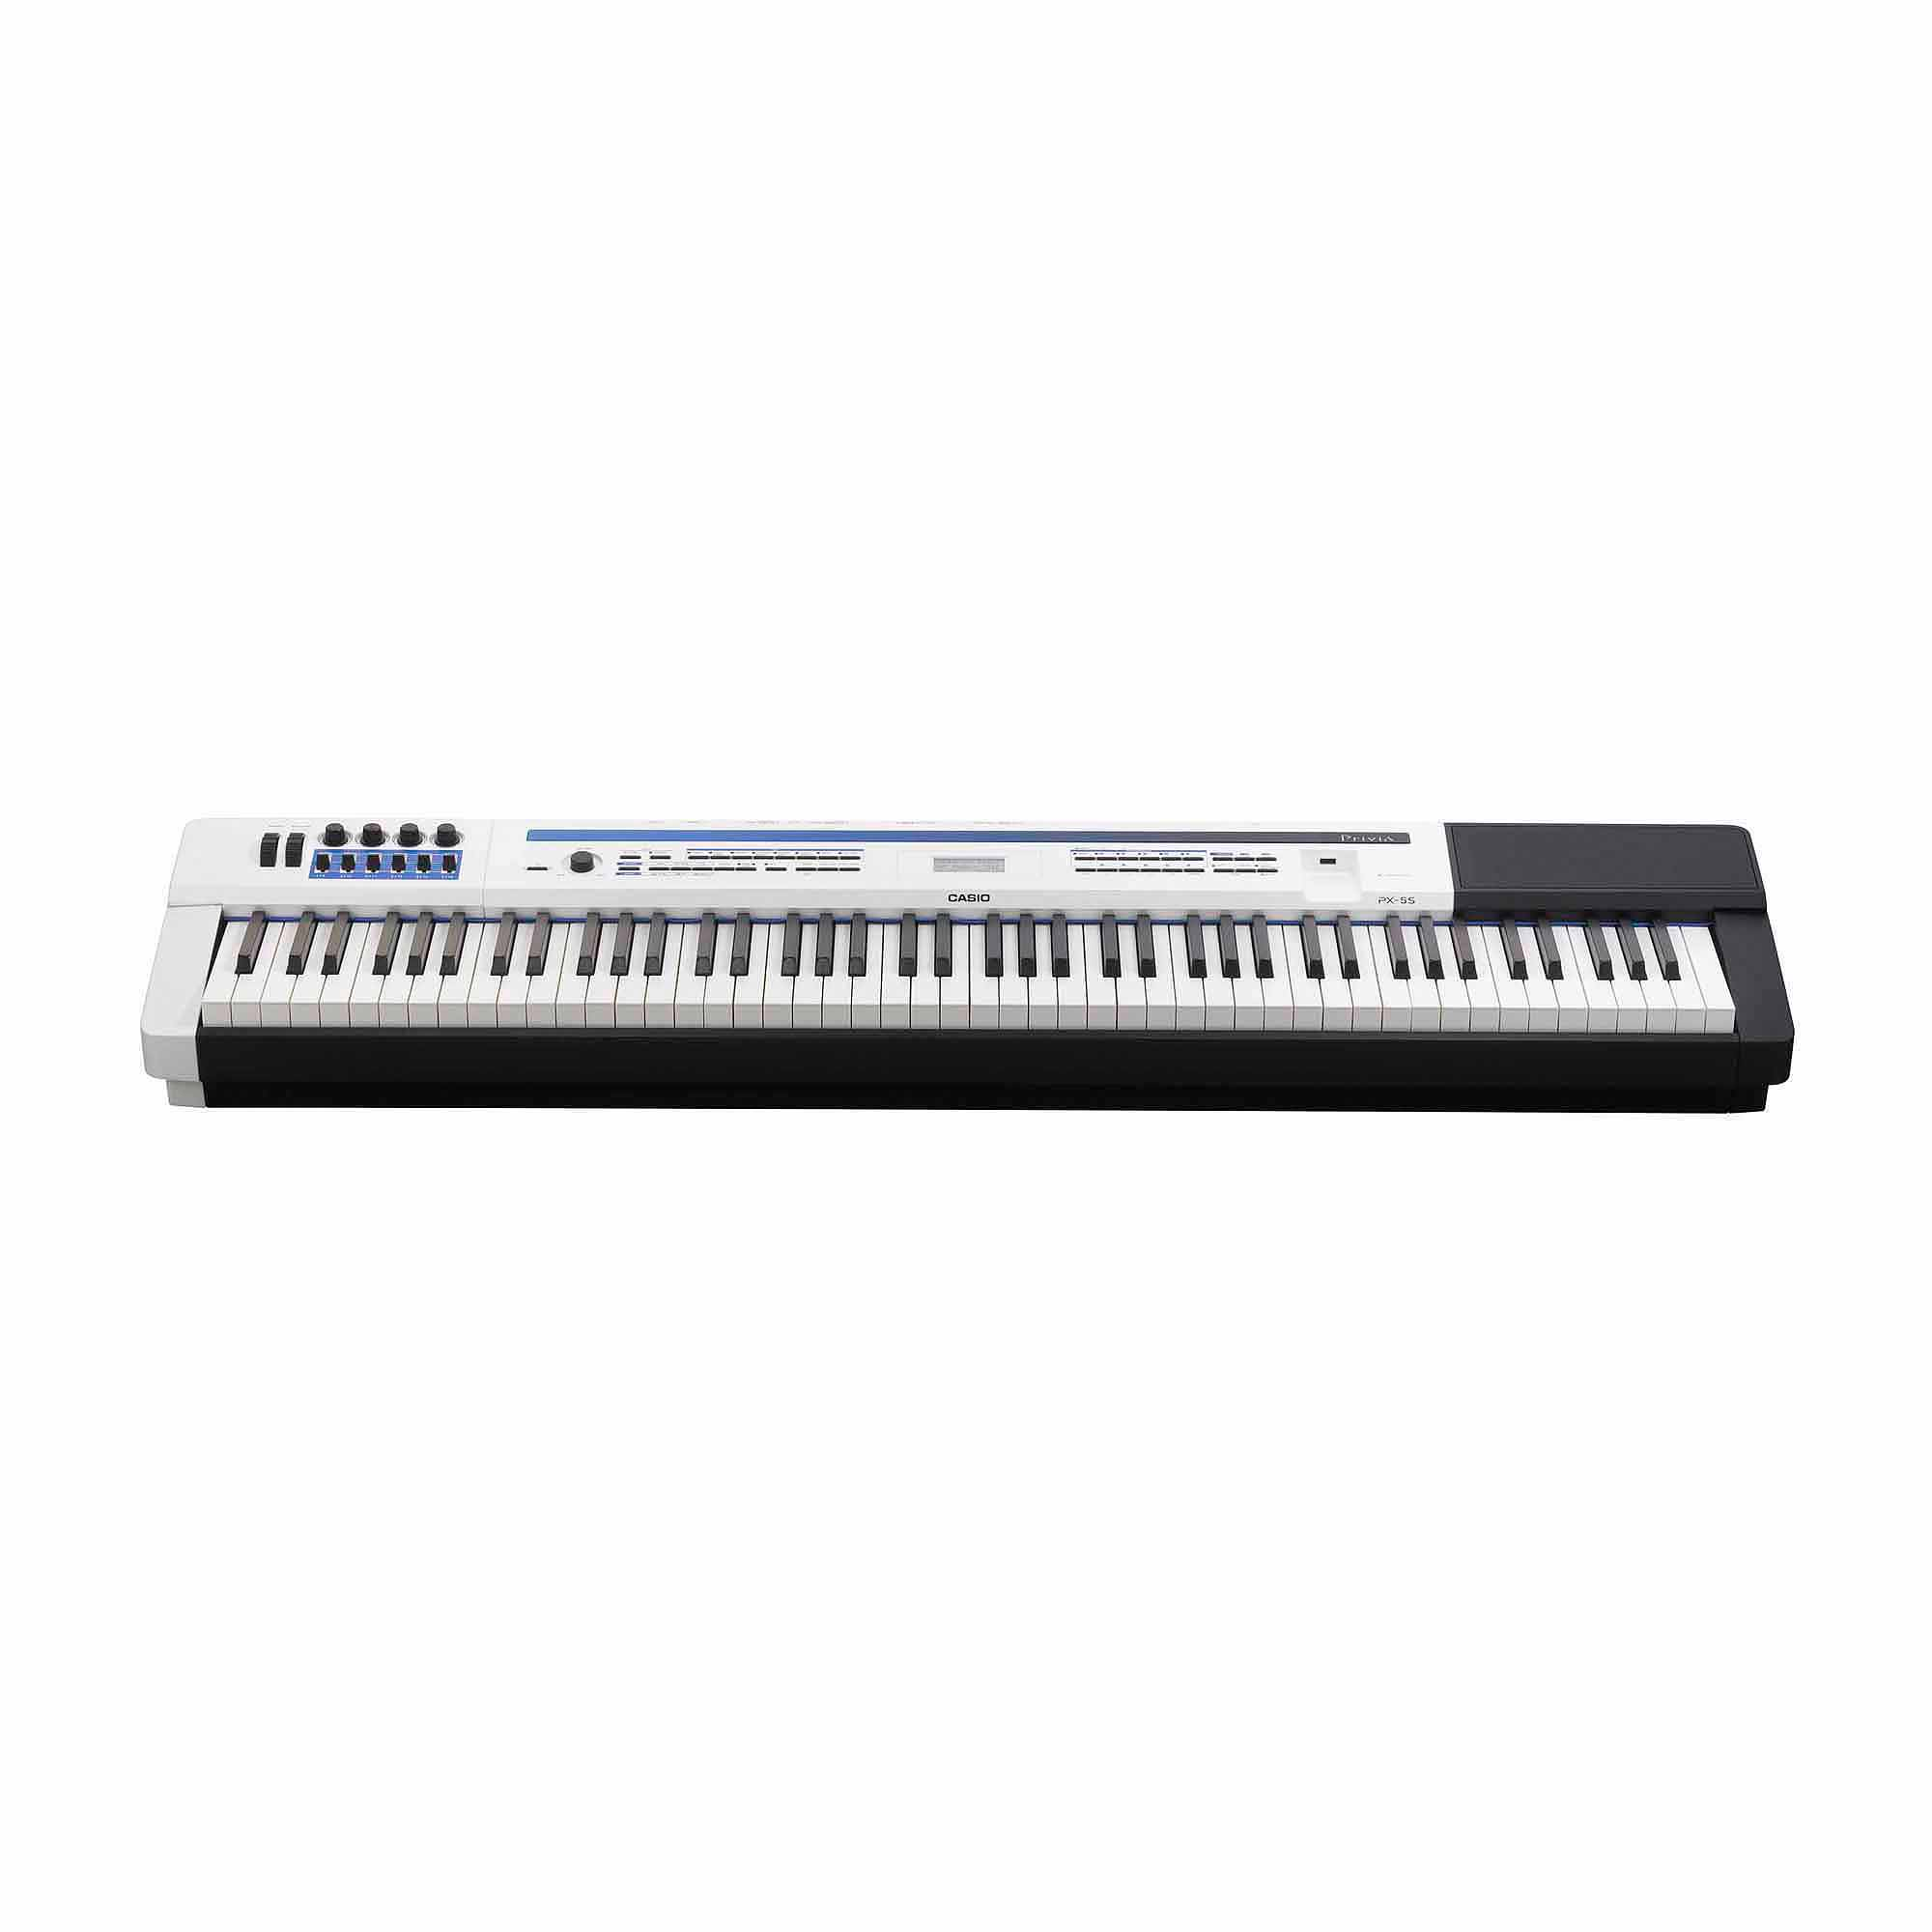 Casio PX-5S Privia Pro Digital Stage Piano by Generic